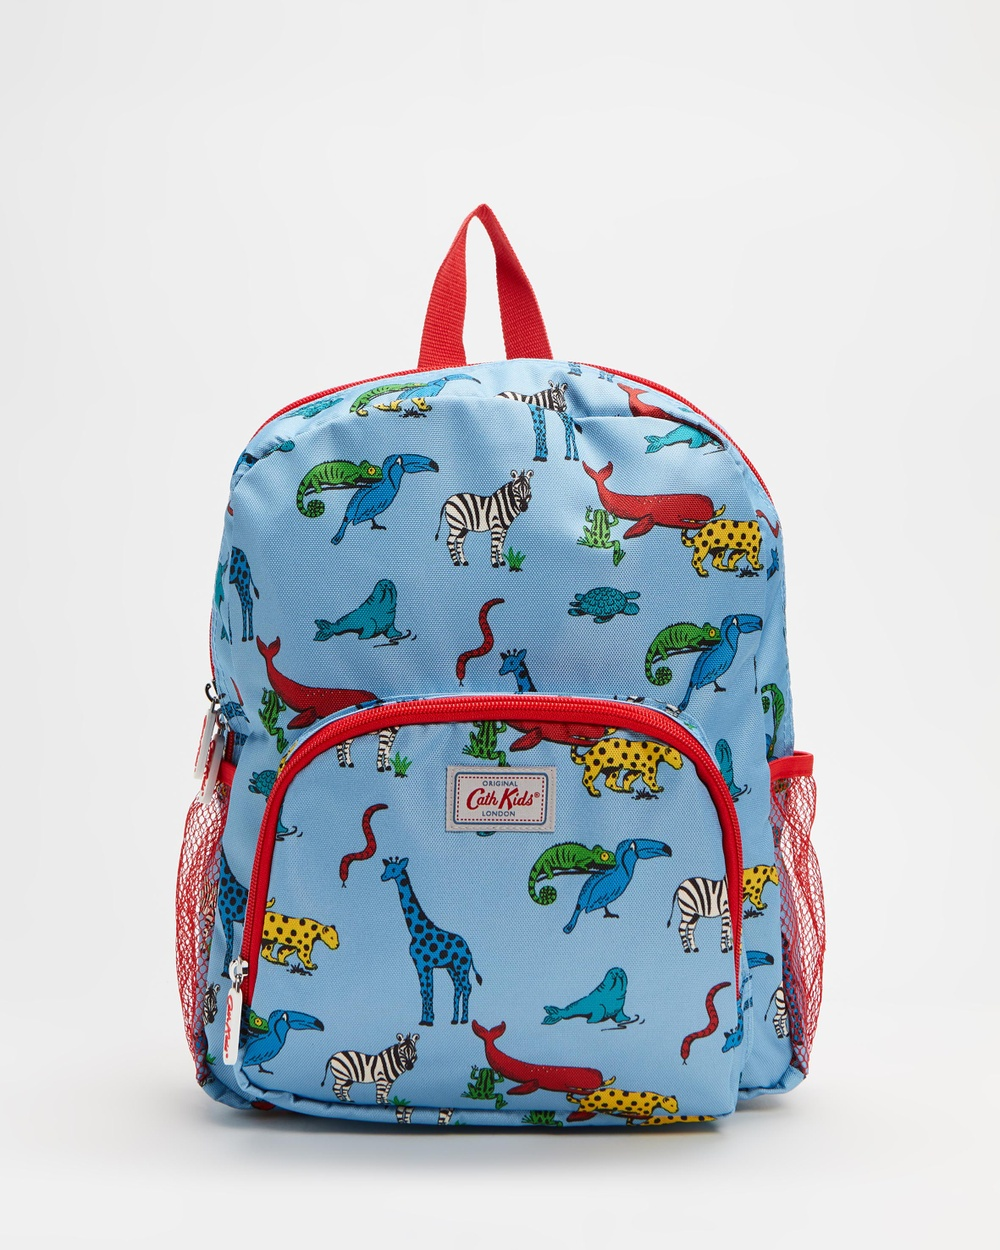 Cath Kidston Classic Large Backpack with Mesh Pocket Kids Backpacks Animals